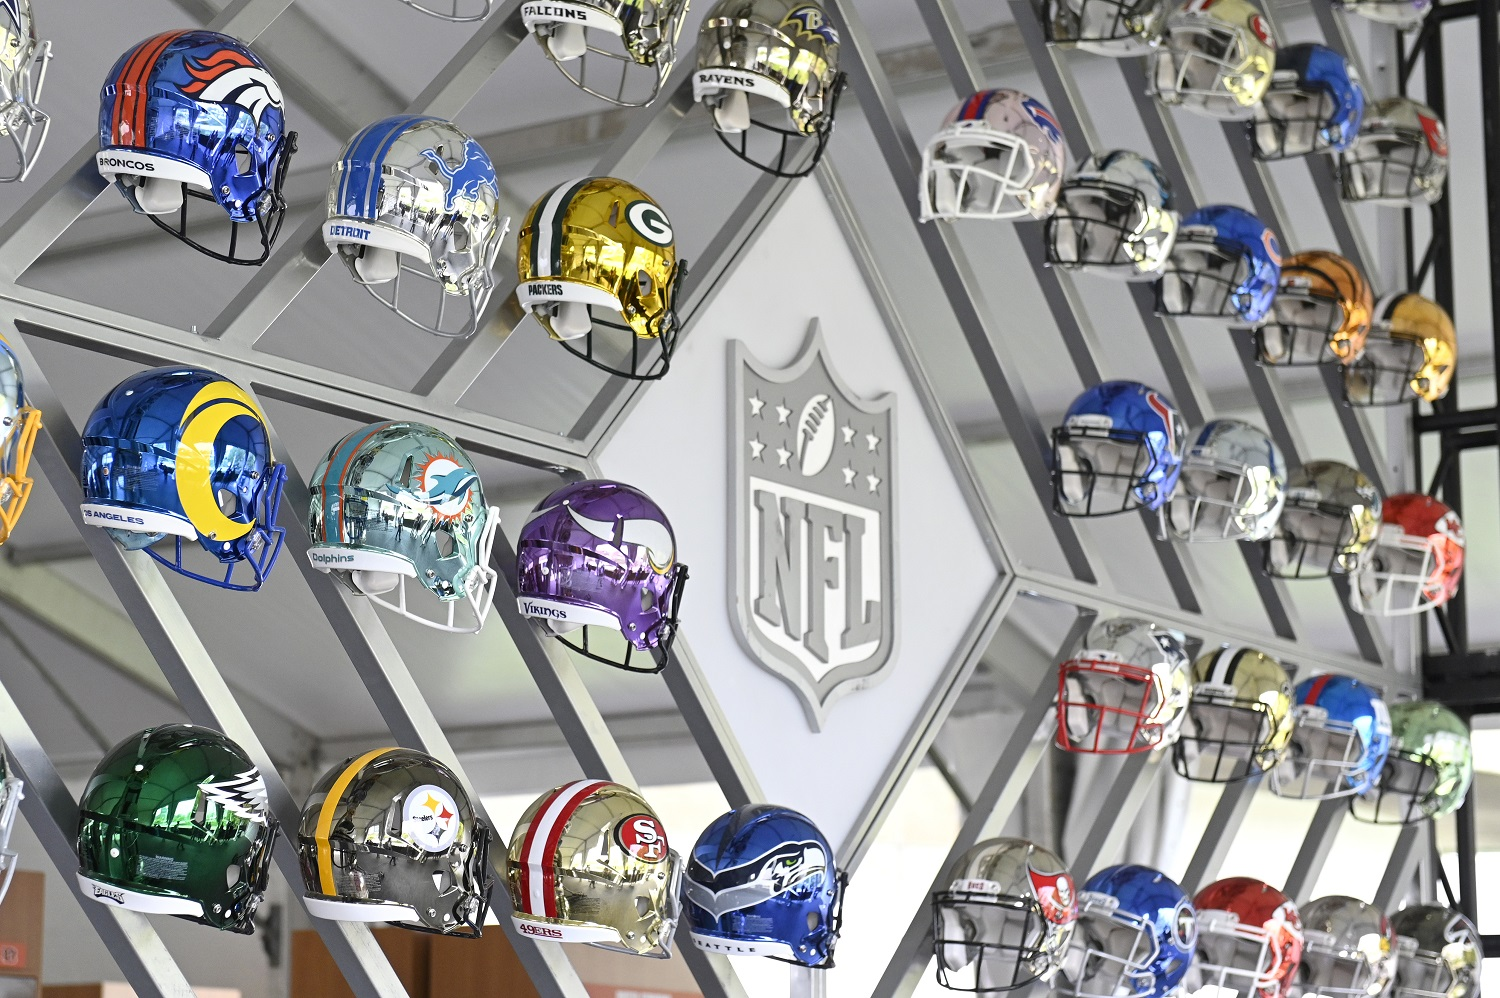 The Wall of NFL team helmets on display inside the NFL Draft Experience in Cleveland. | Duane Prokop/Getty Images